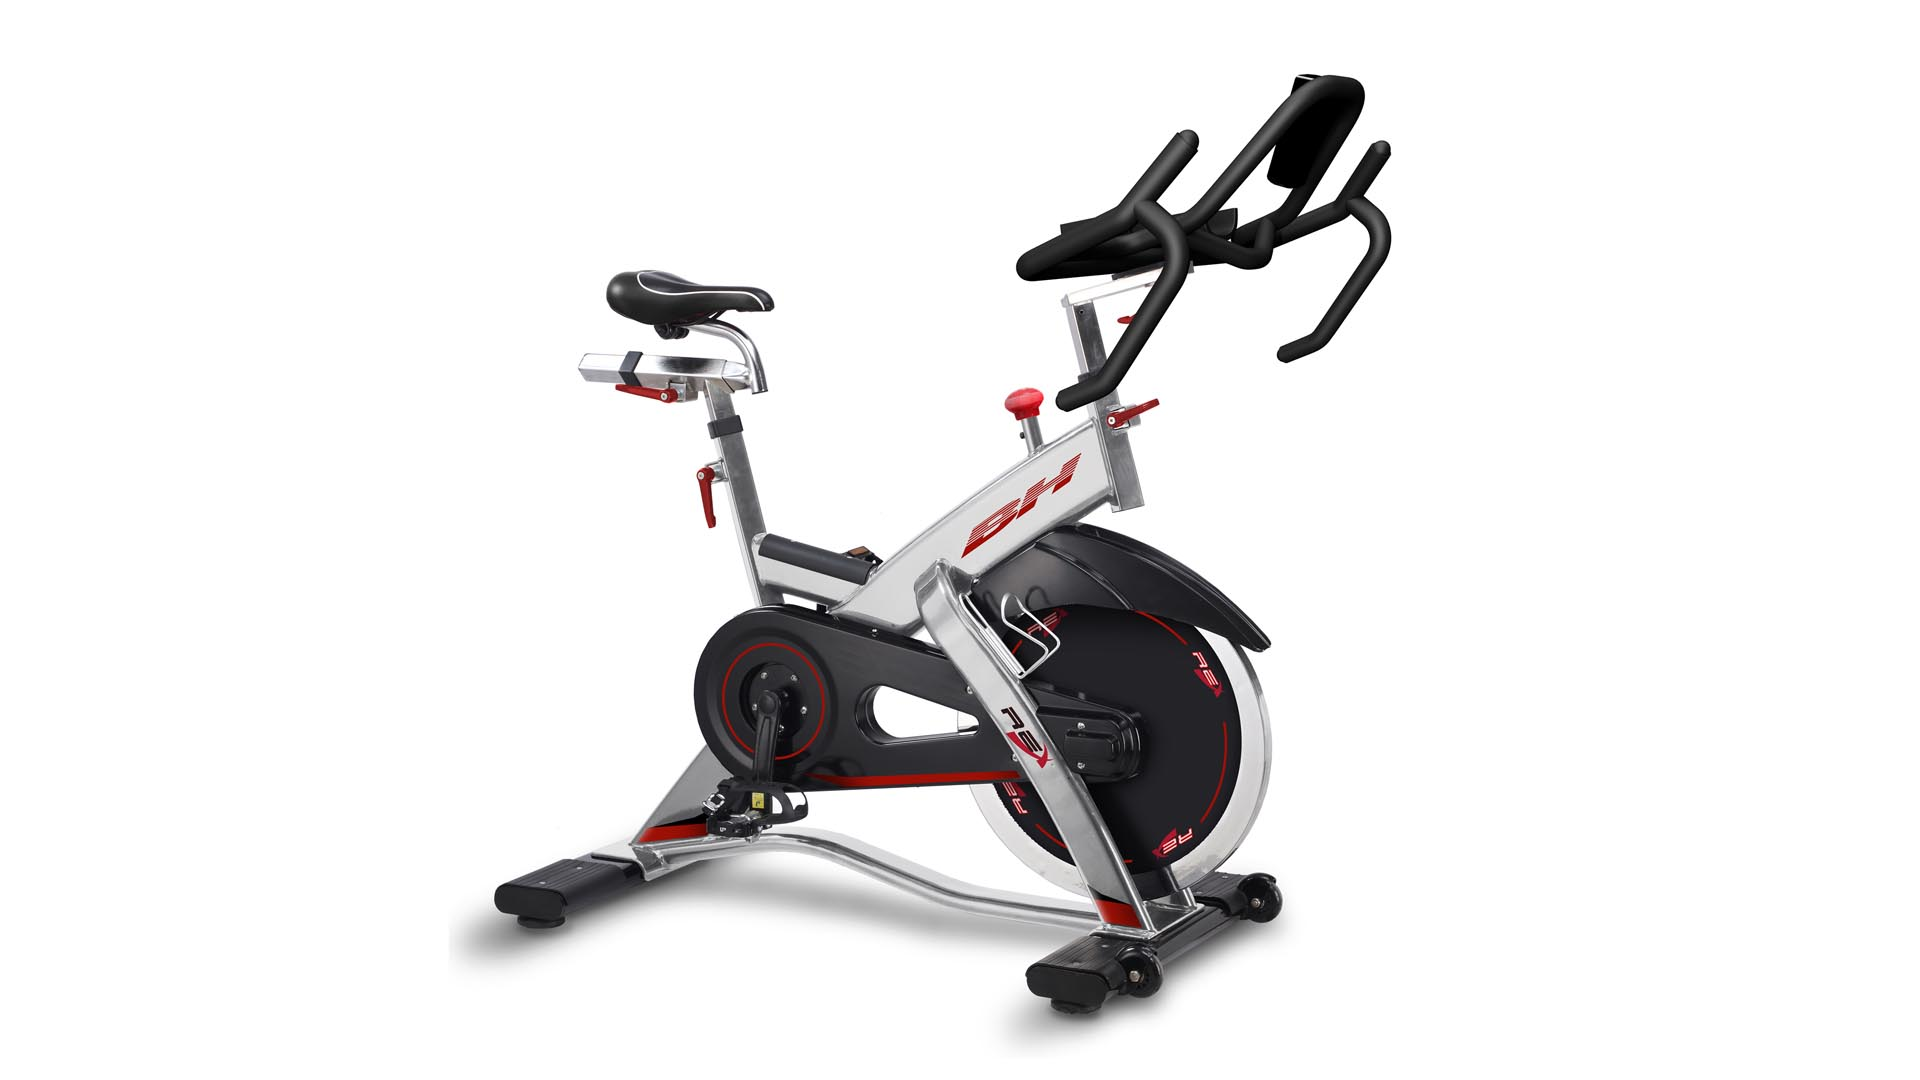 REX indoor exercise bike